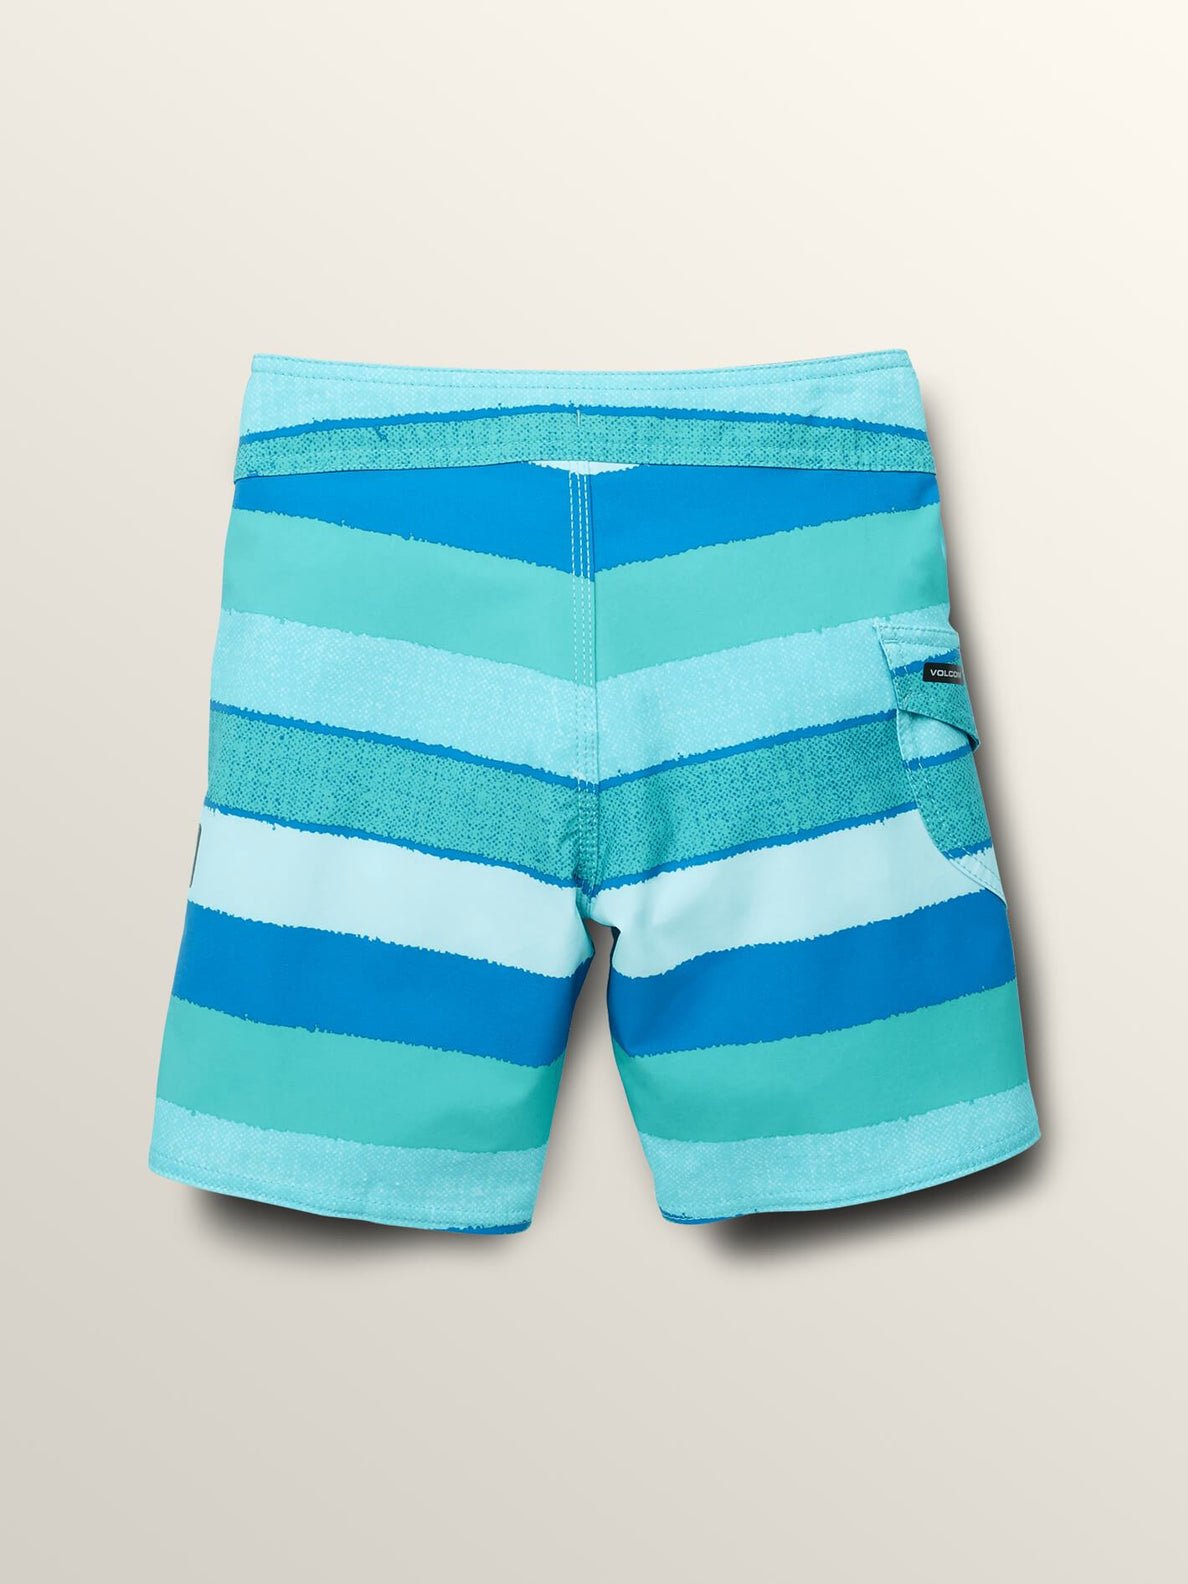 Little Boys Magnetic Liney Mod Boardshorts In Turquoise, Back View